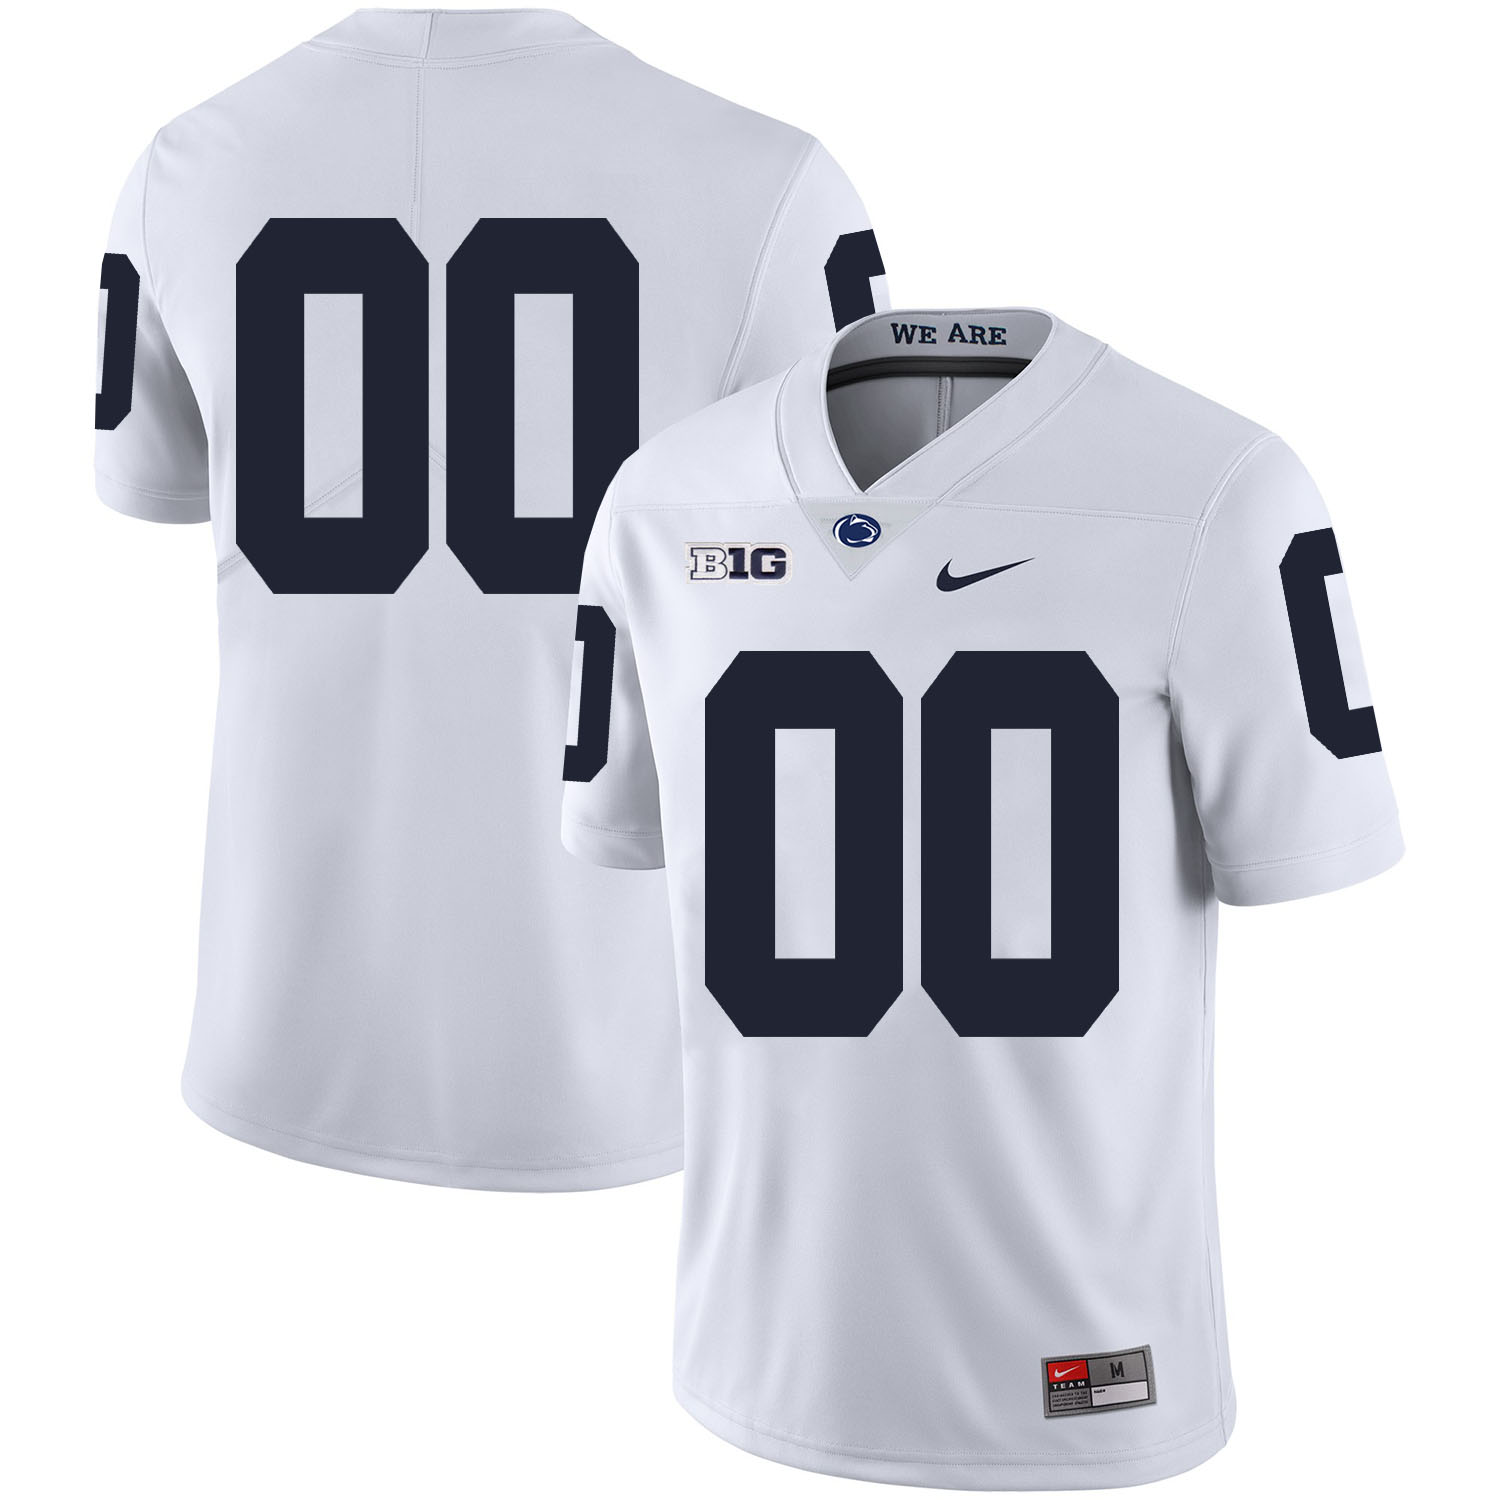 Penn State Nittany Lions White Men's Customized Nike College Football Jersey